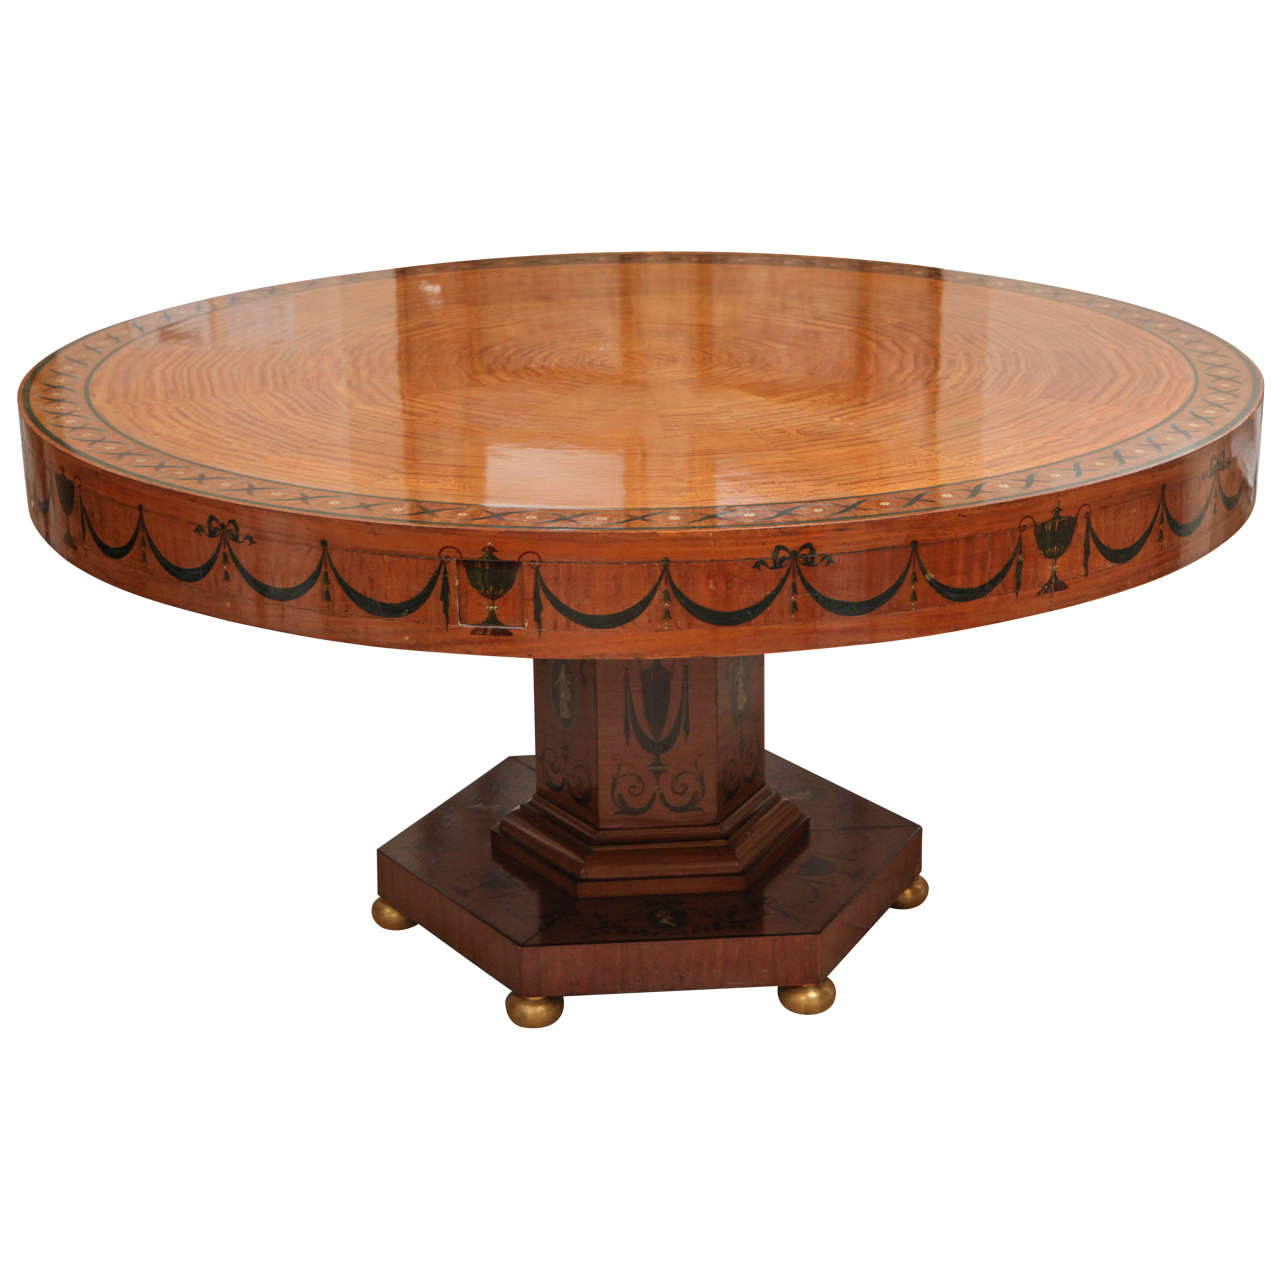 19th Century Edward Caldwell Round Satinwood Dining Table For Sale